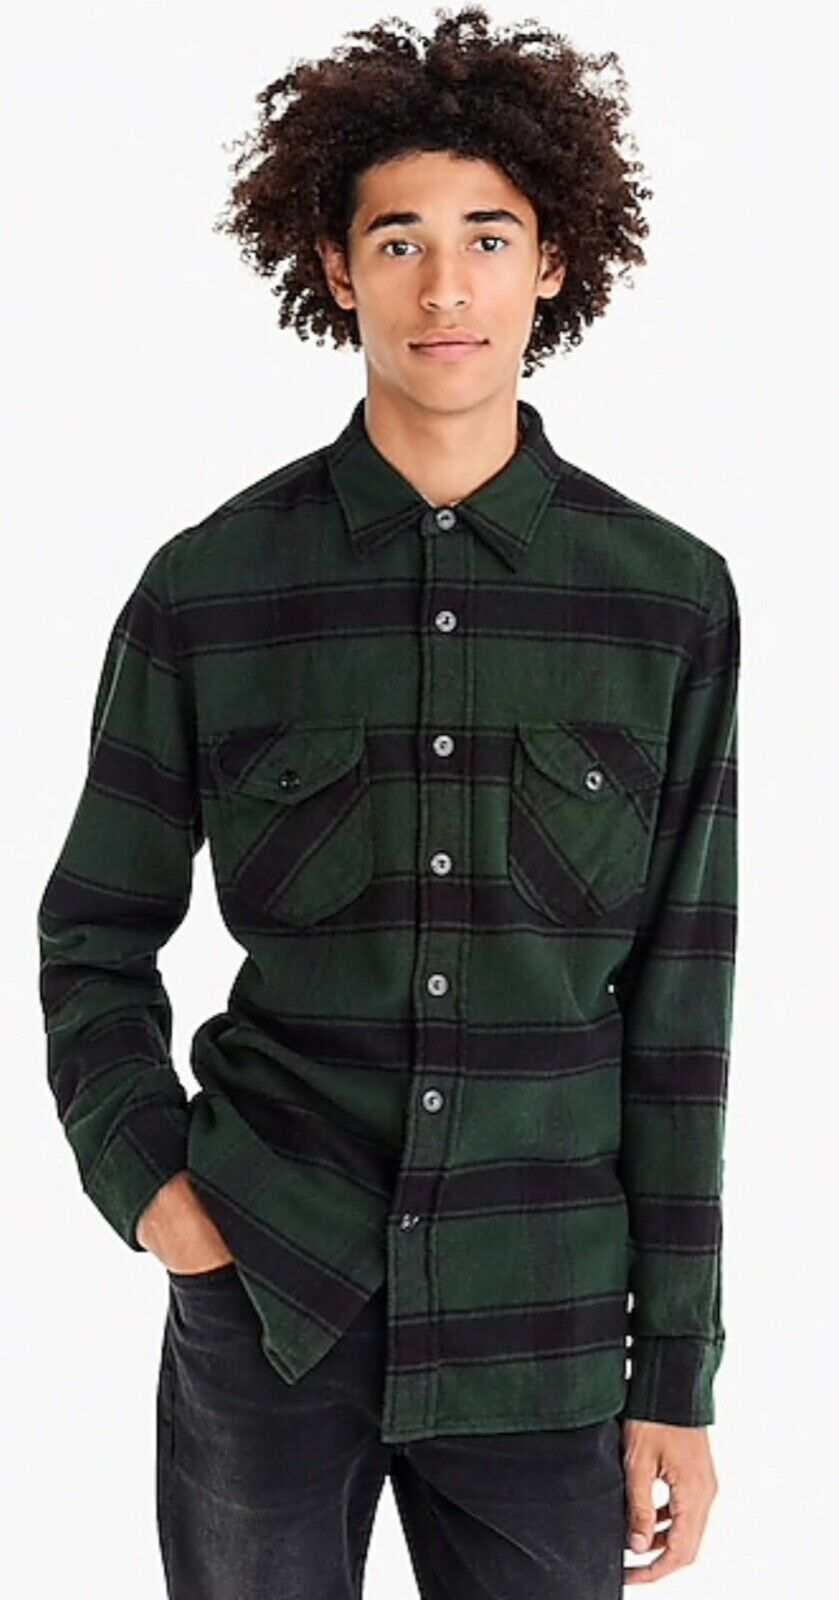 J CREW Wallace & Barnes heavyweight flannel shirt in stable plaid